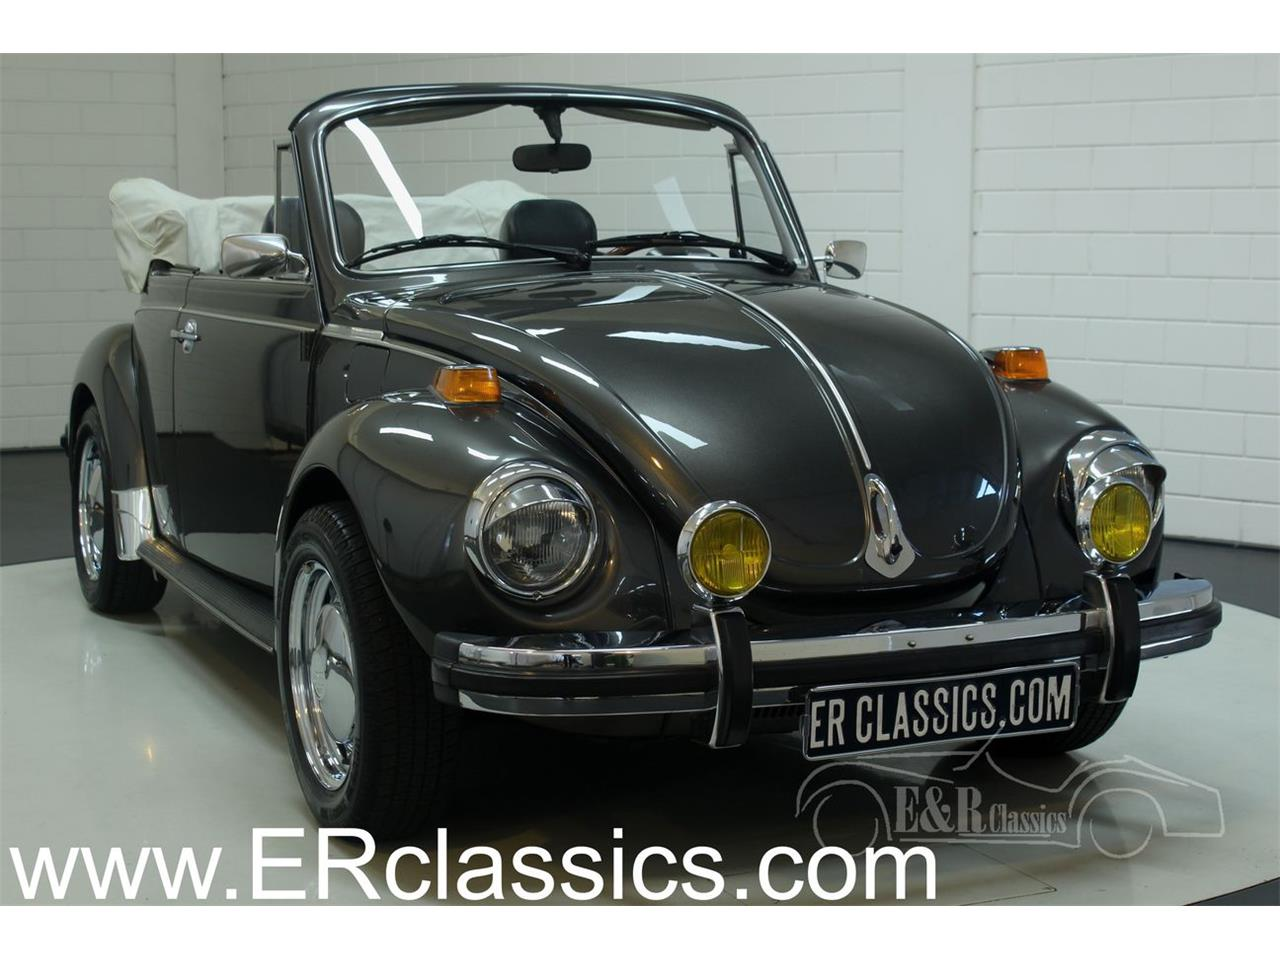 Large Picture of 1979 Beetle located in Noord-Brabant - $29,000.00 - OICV